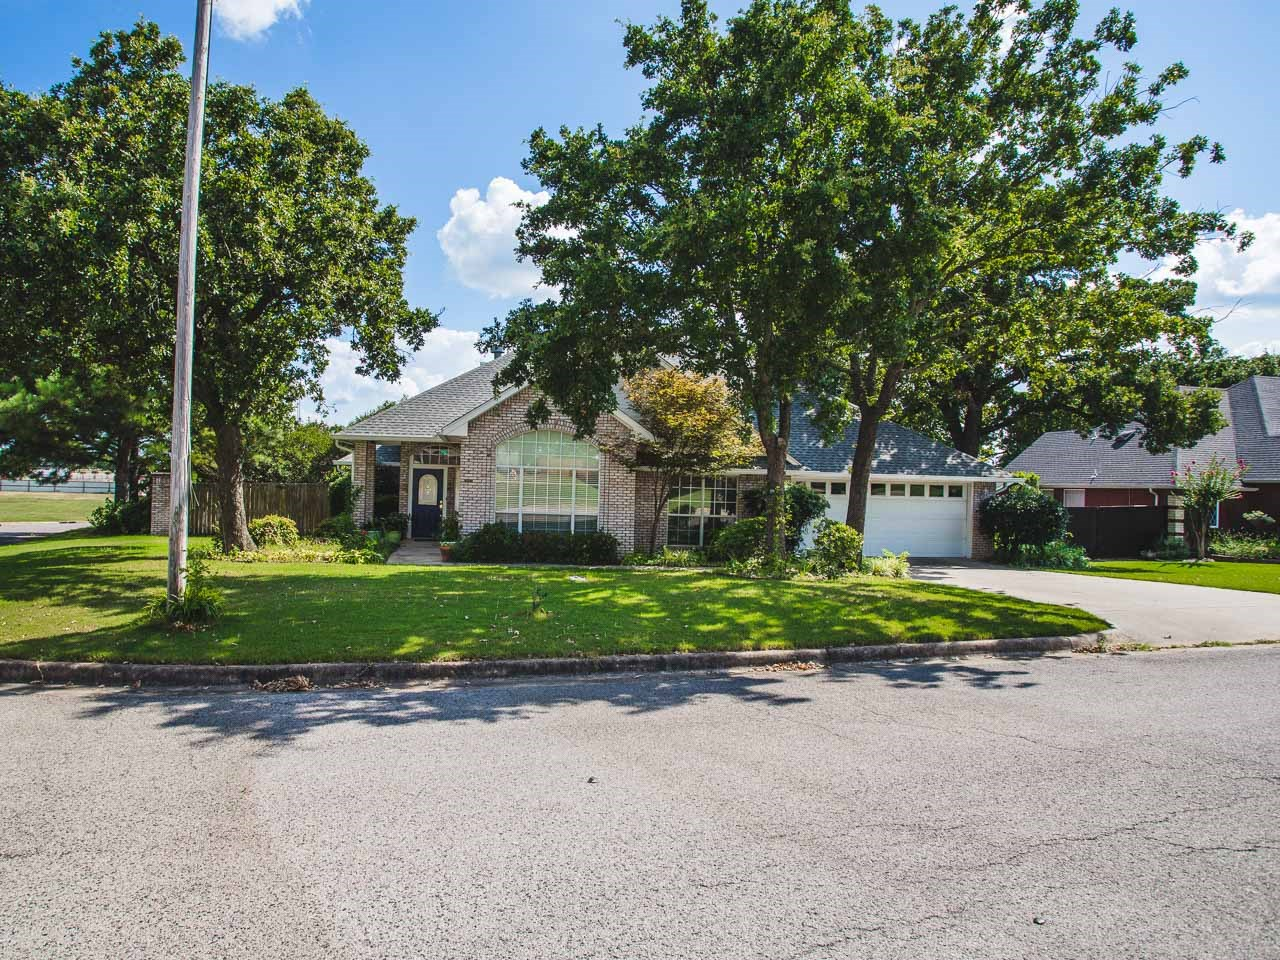 Single Story move-in-ready home in Country Club Estates